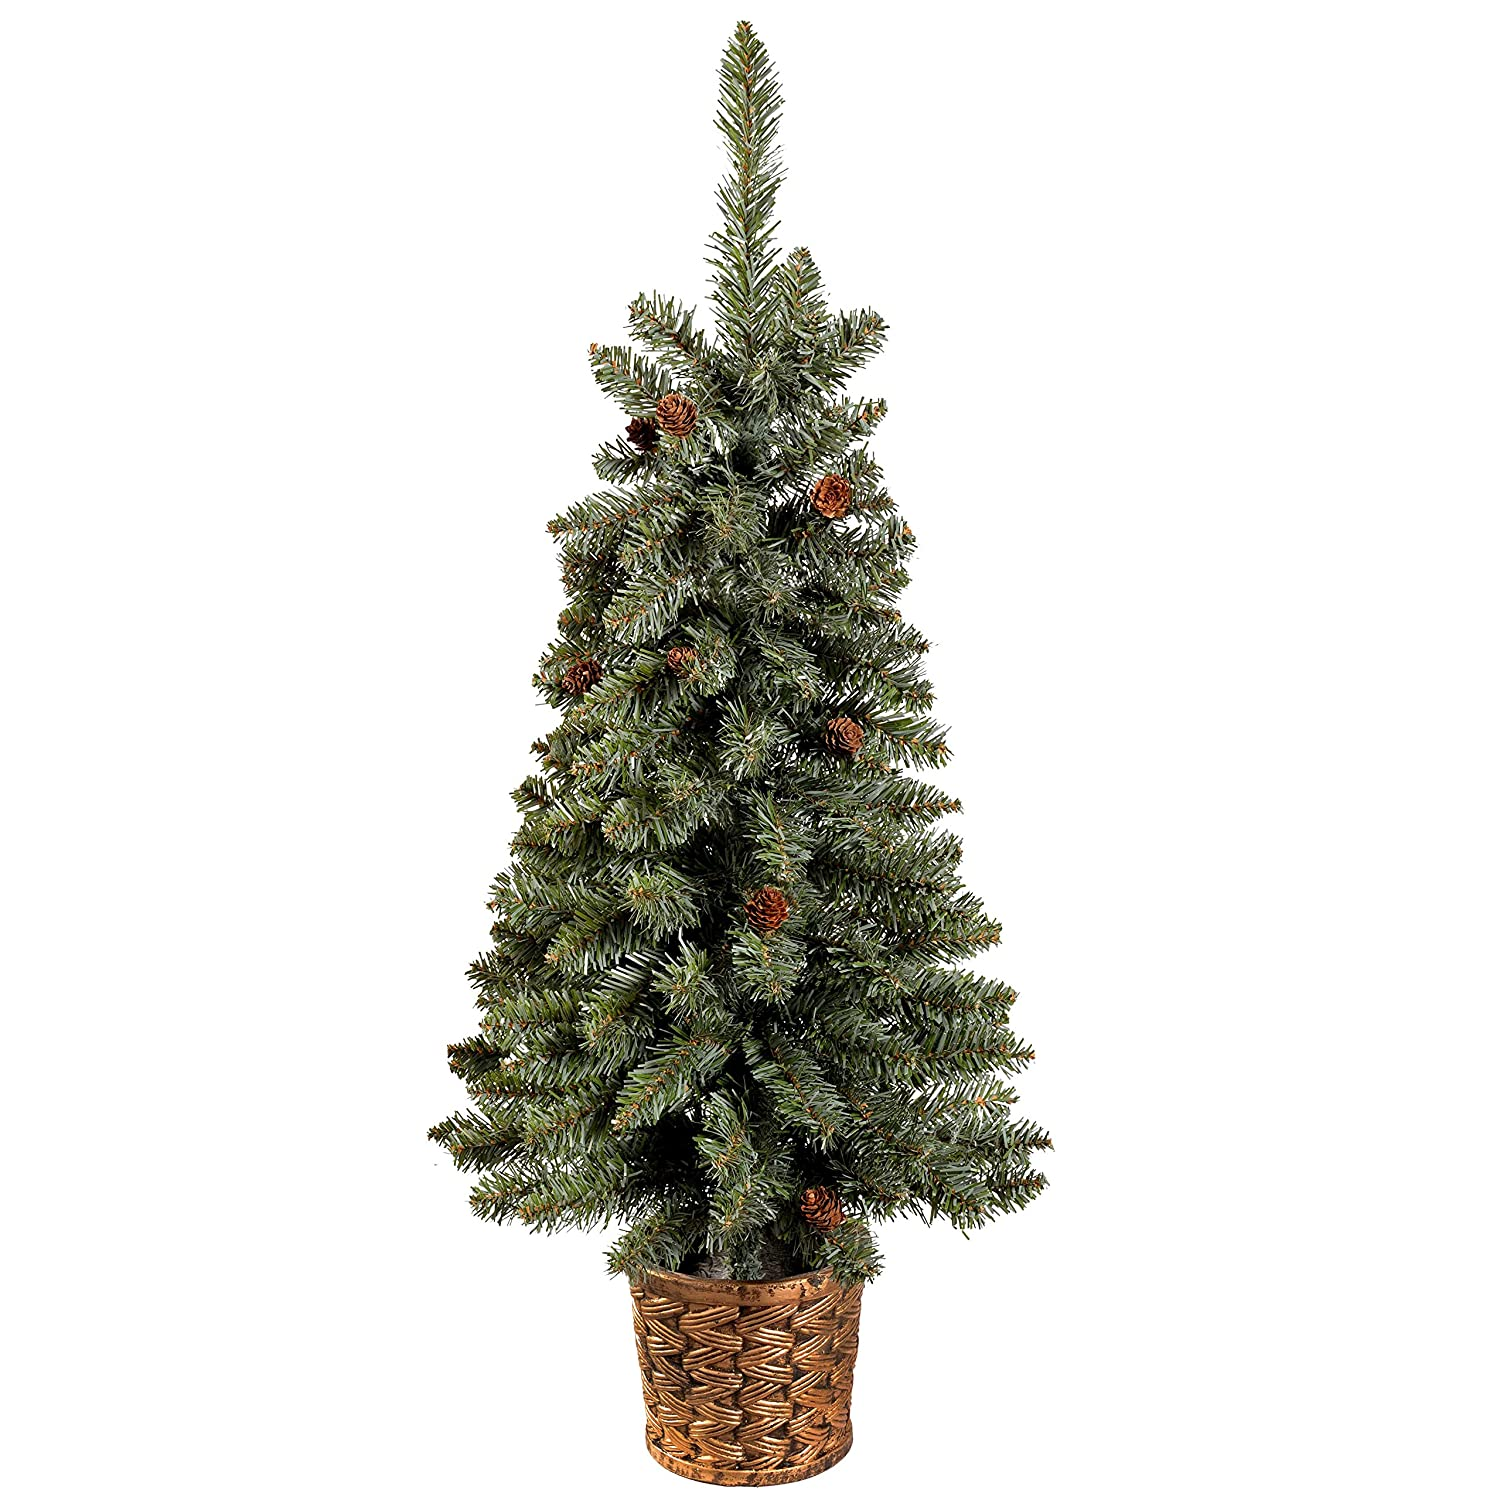 3ft 90cm Craford Blue Pine Christmas Tree With Mini Pine Cones In A Gold Resin Pot